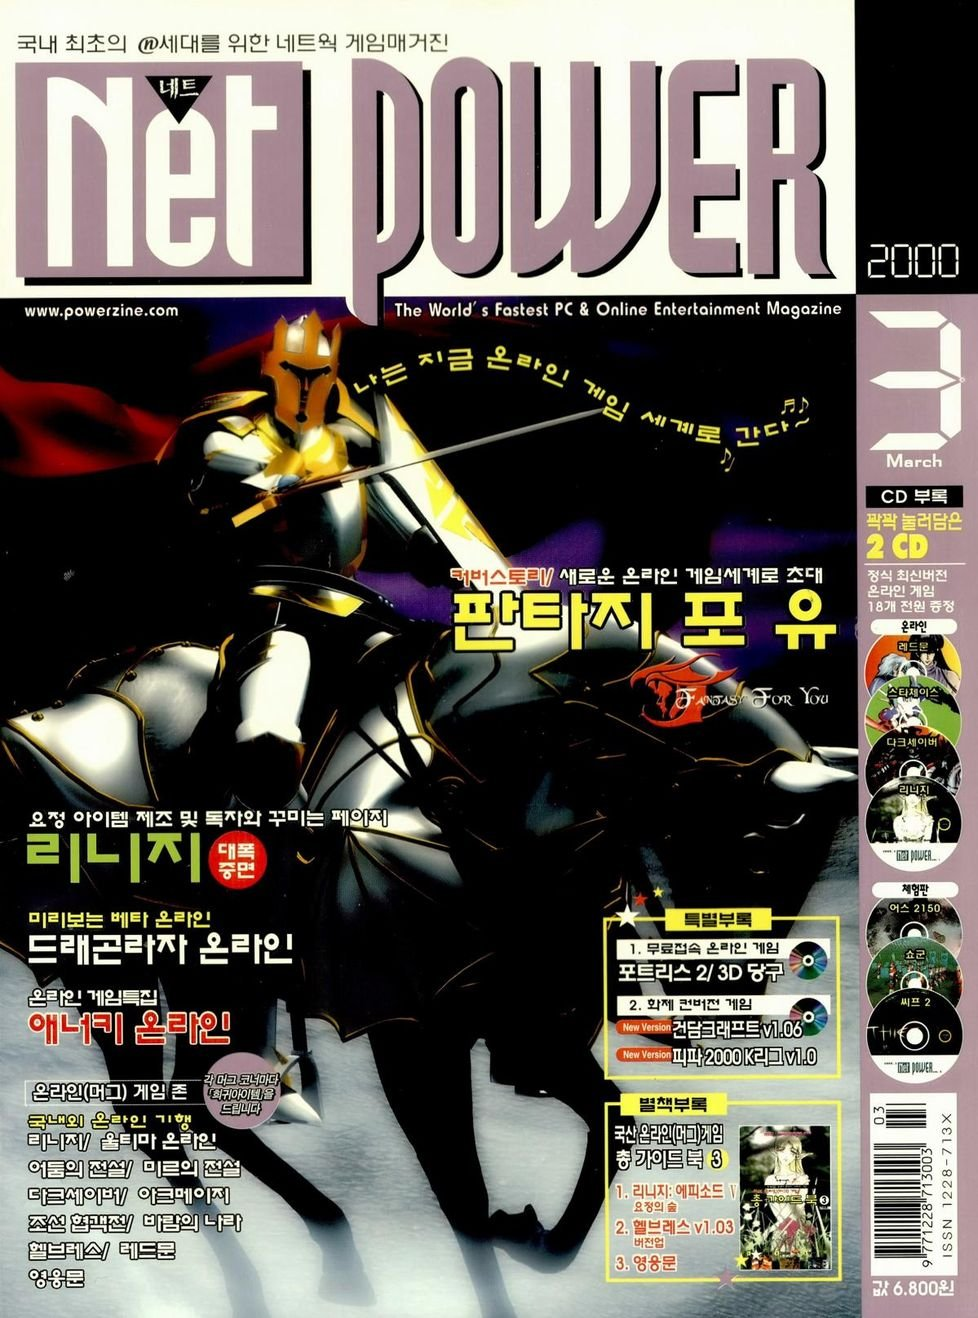 Net Power Issue 06 (March 2000)